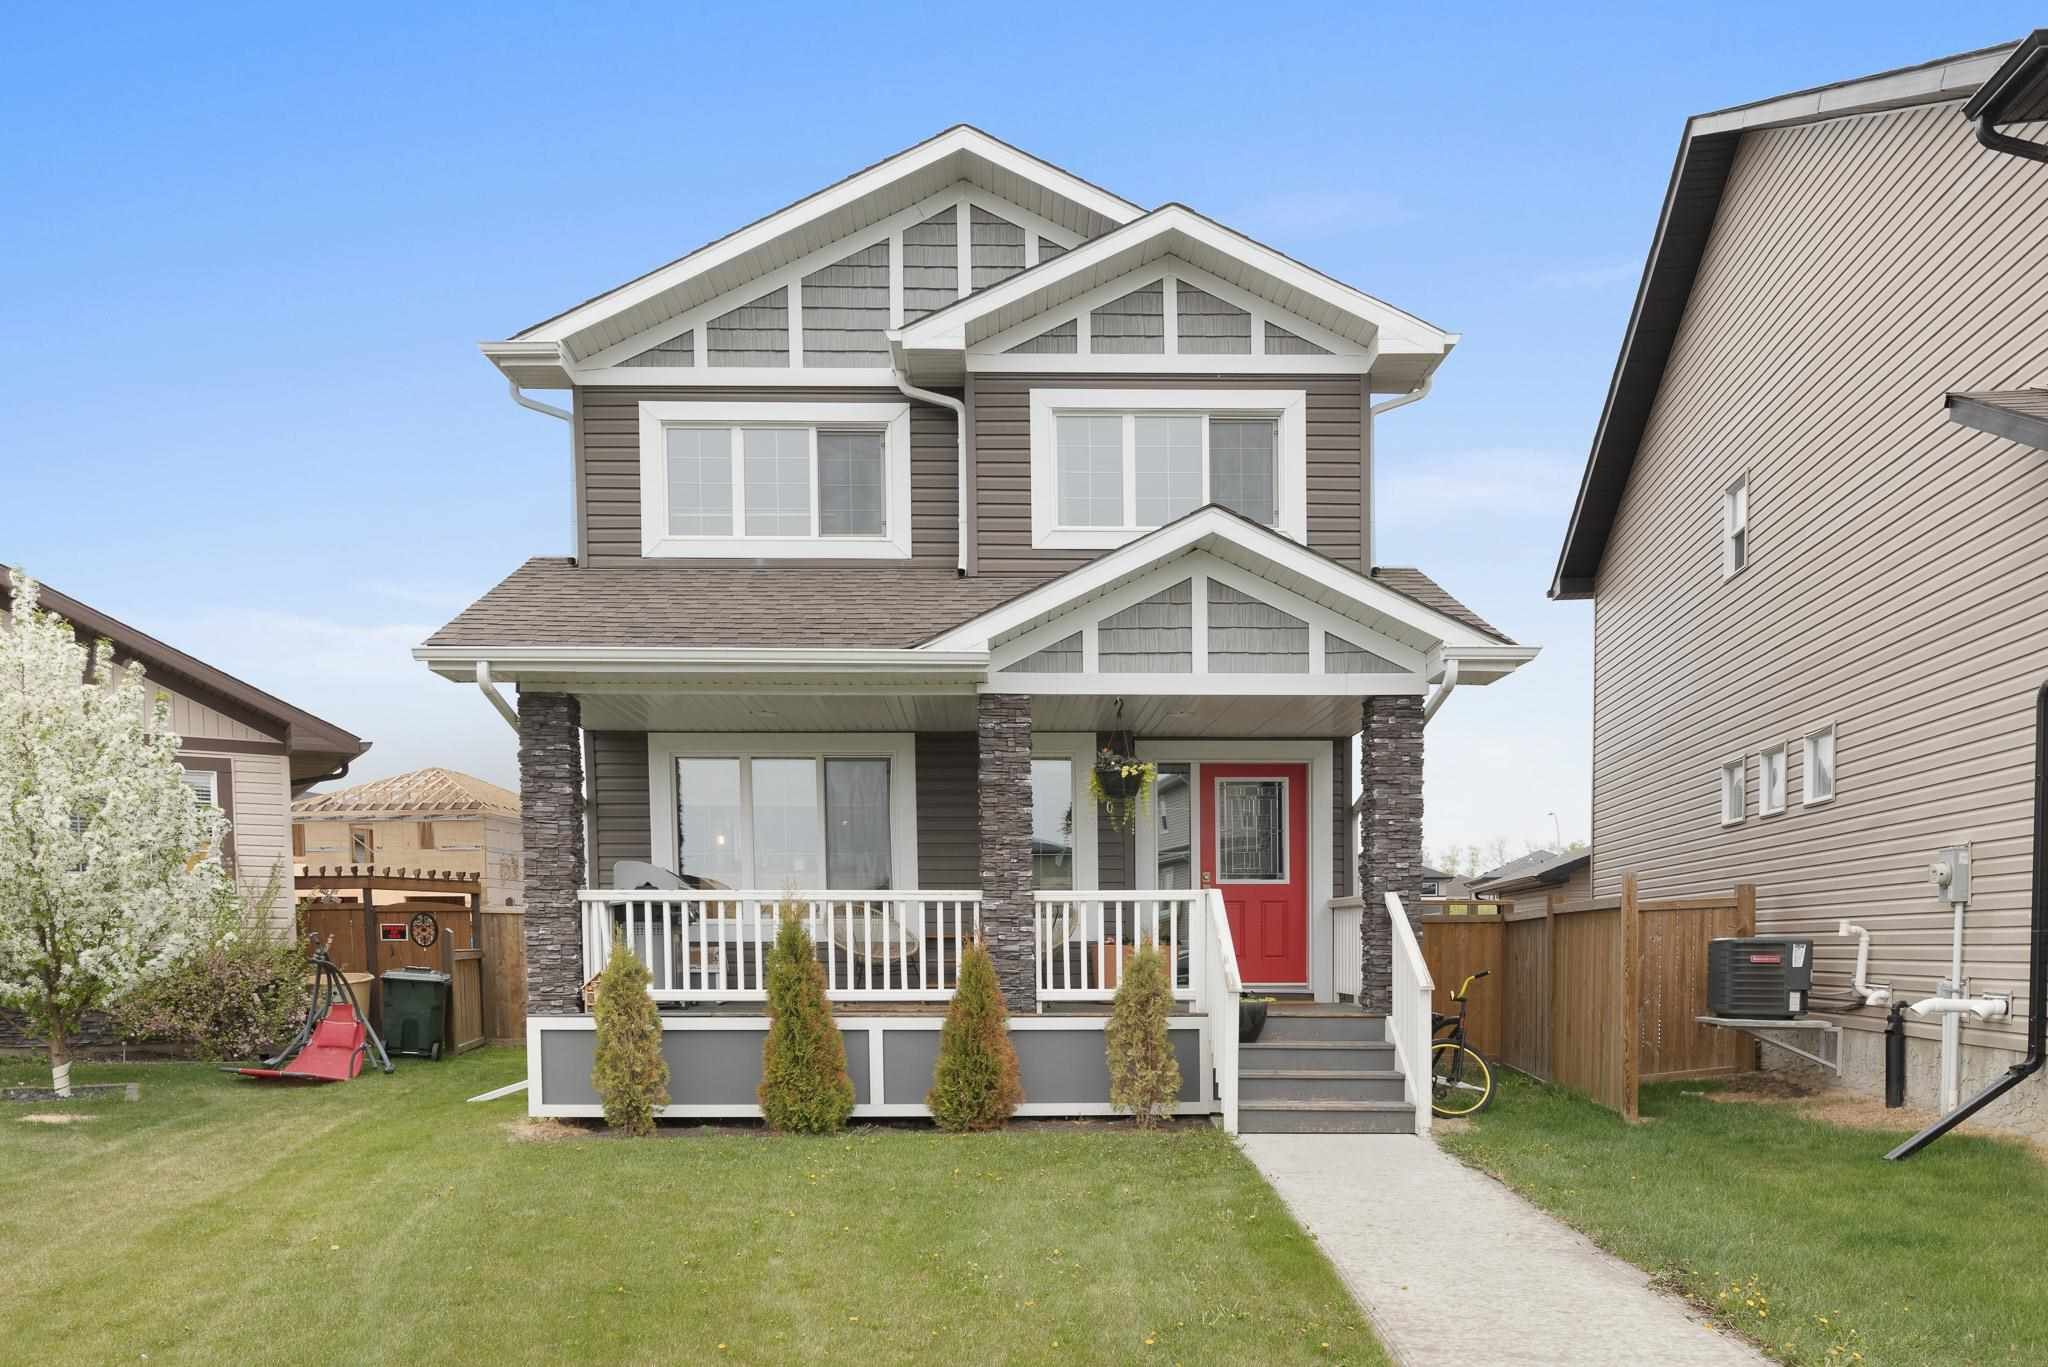 Main Photo: 100 HEWITT Circle: Spruce Grove House for sale : MLS®# E4247362